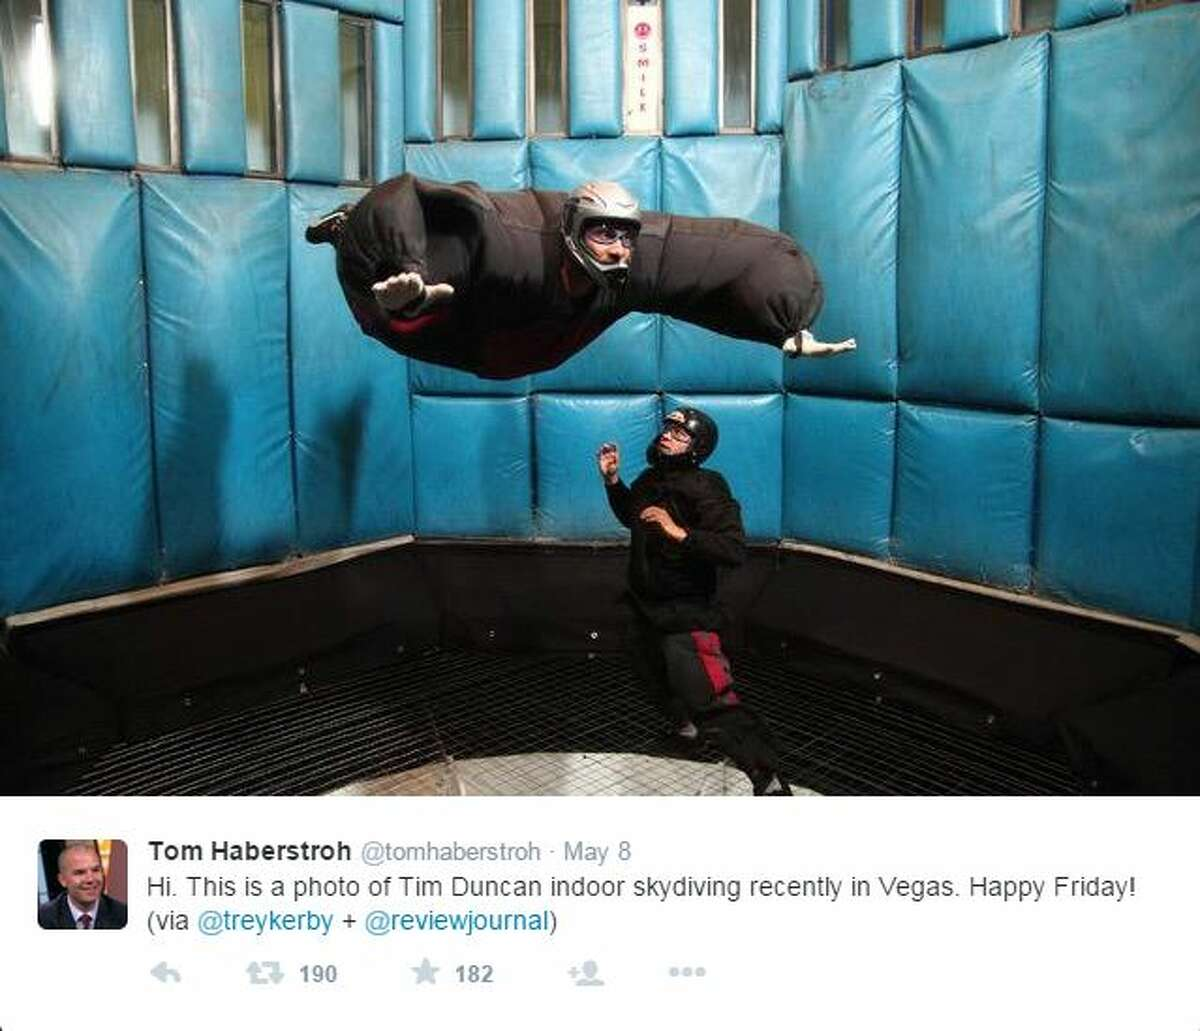 2. Tim Duncan  The living legend indoor skydived in Las Vegas, according to this photo Tweeted by ESPN NBA Insider, @tomhaberstroh.